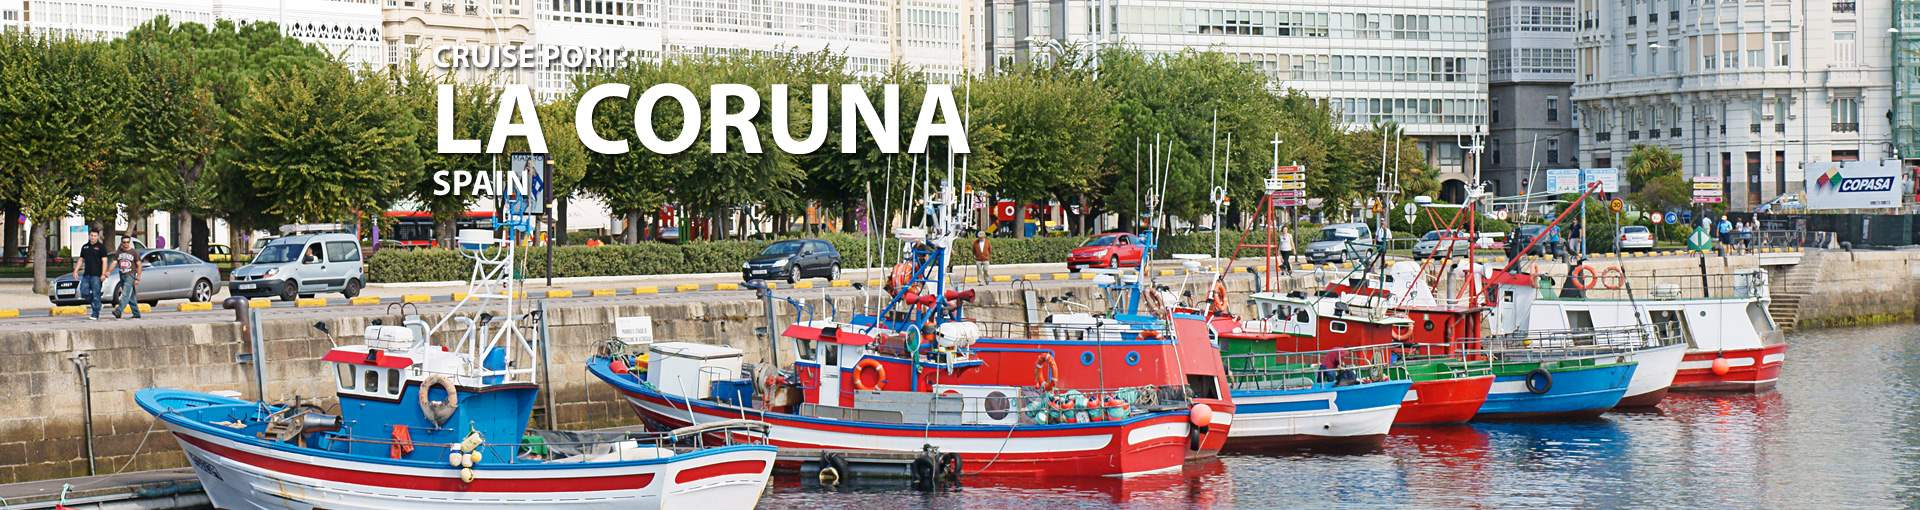 Cruises to La Coruna, Spain